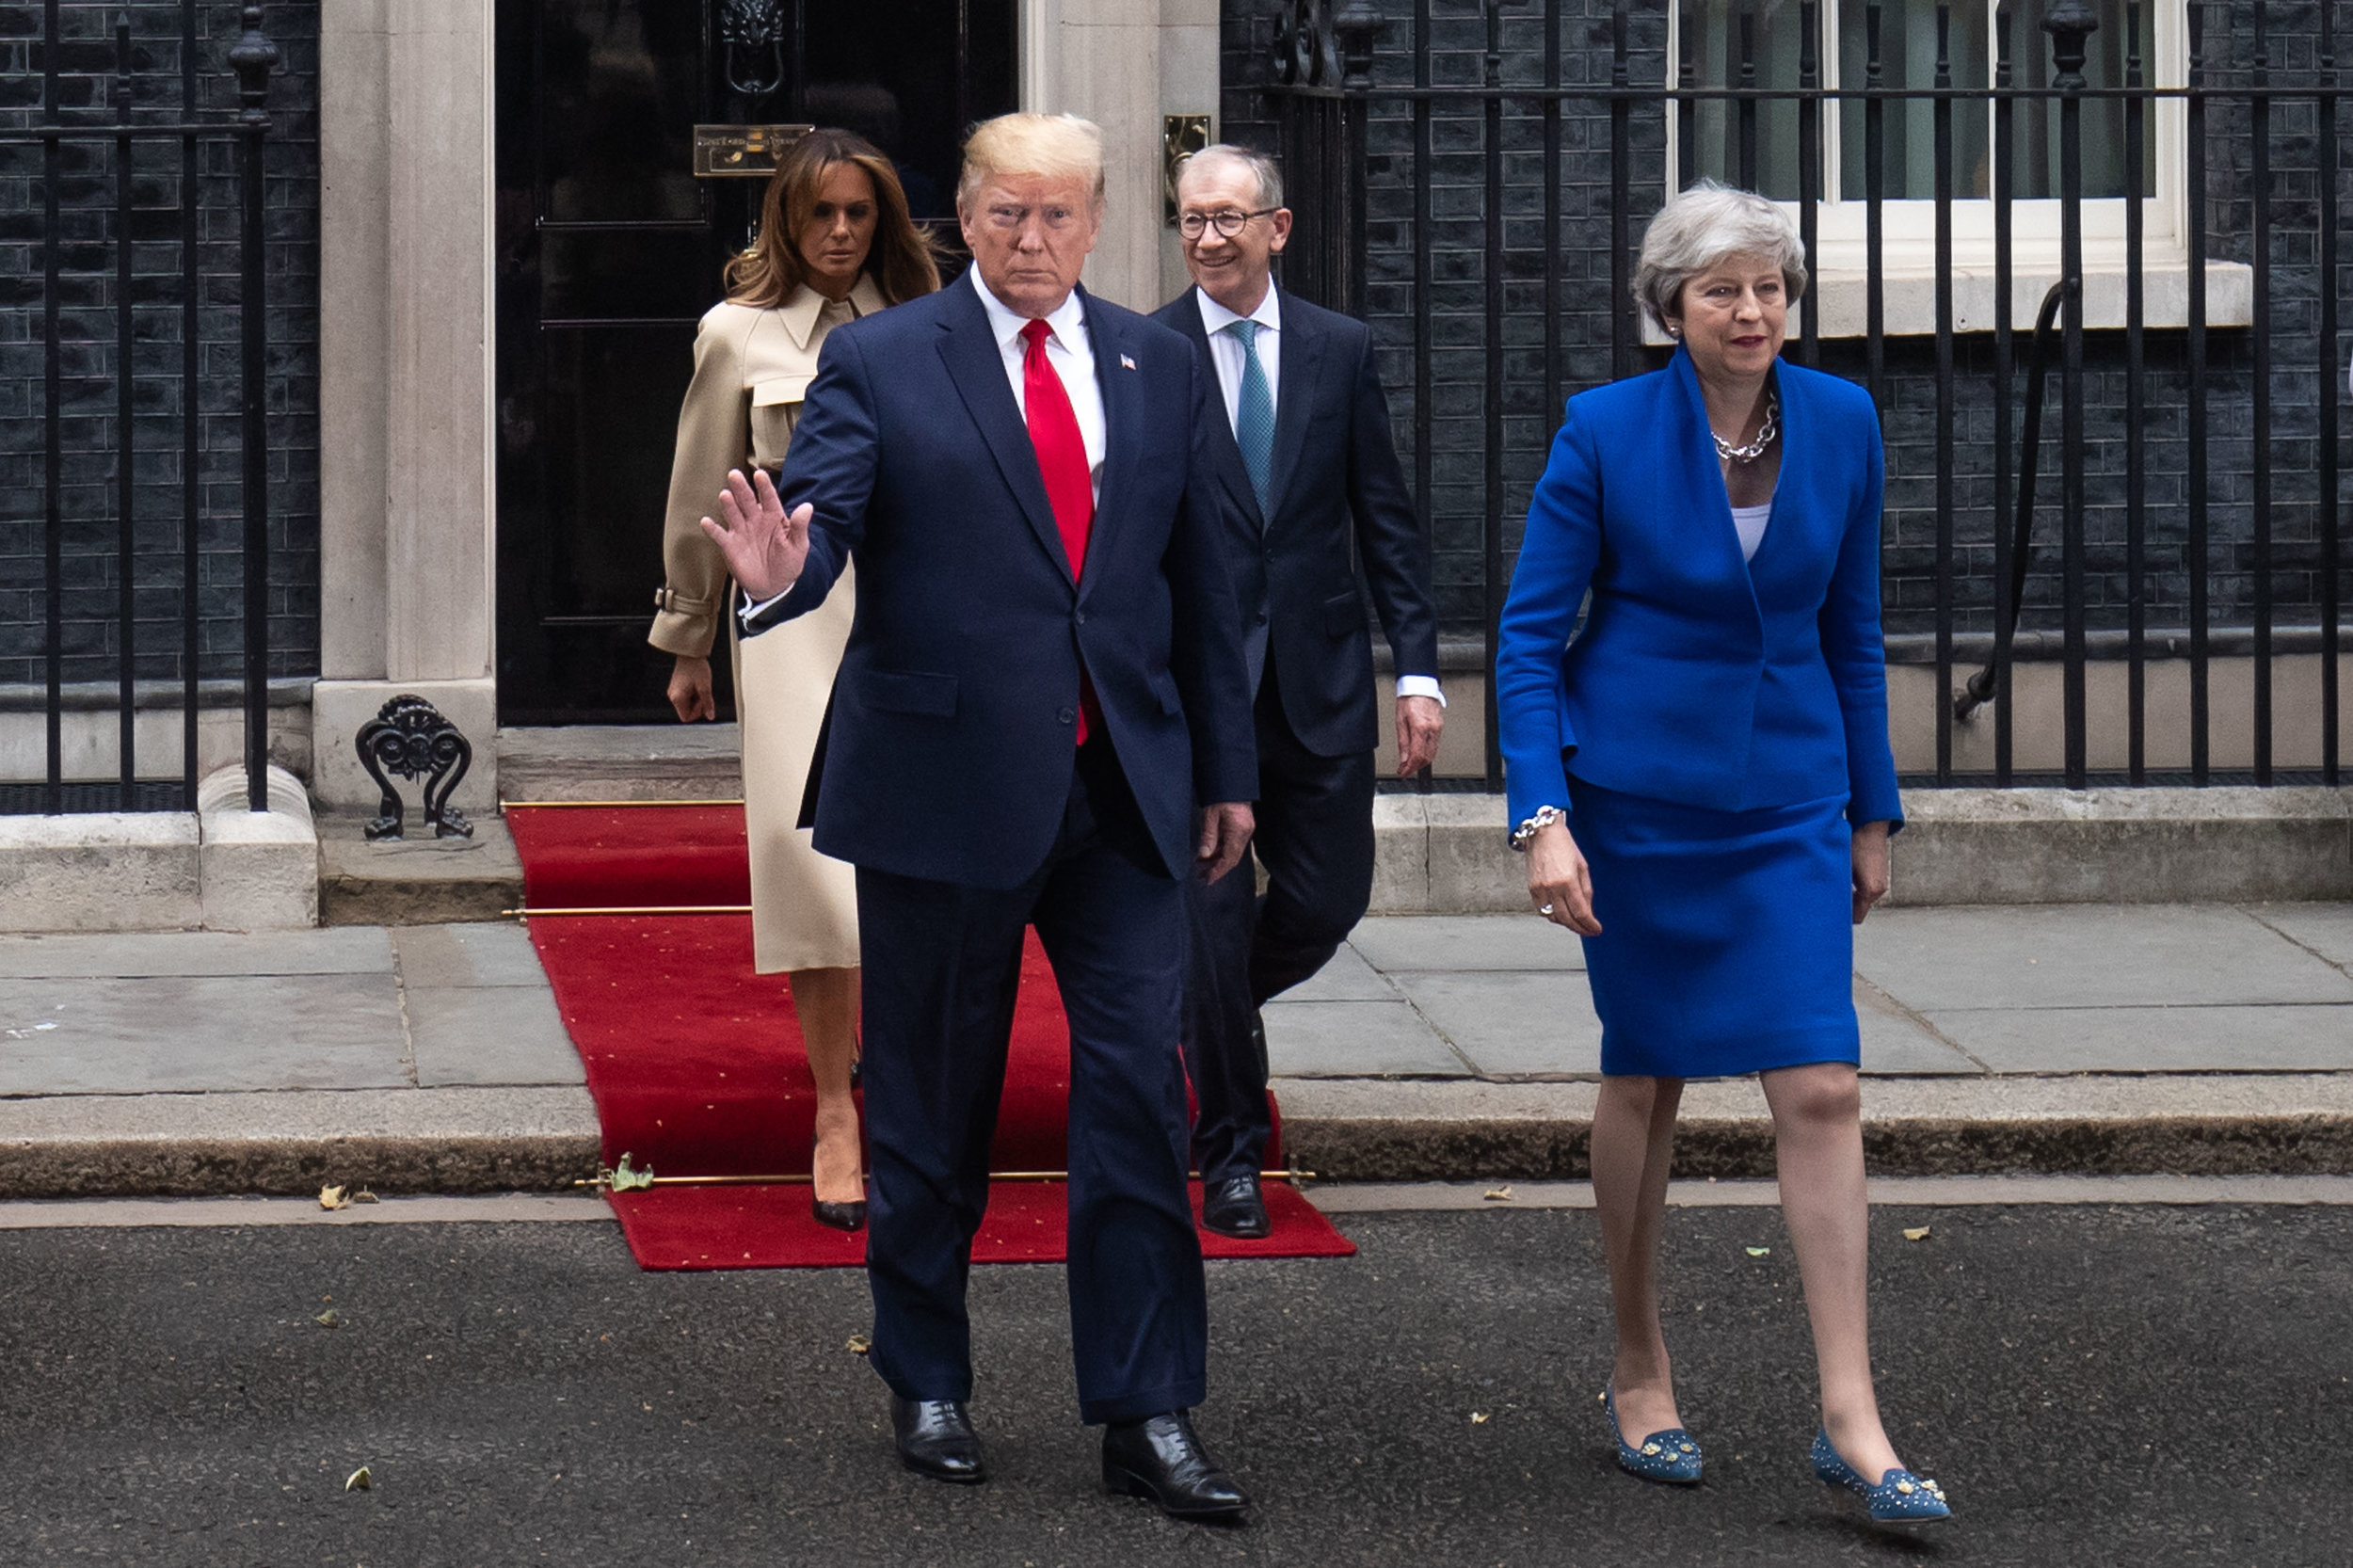 British Prime Minister Theresa May and US President Donald Trump accompanied by US First Lady Melania Trump and  Philip May, visit Number 10 Downing Street during the second day of his state visit on June 04, 2019 in London, England